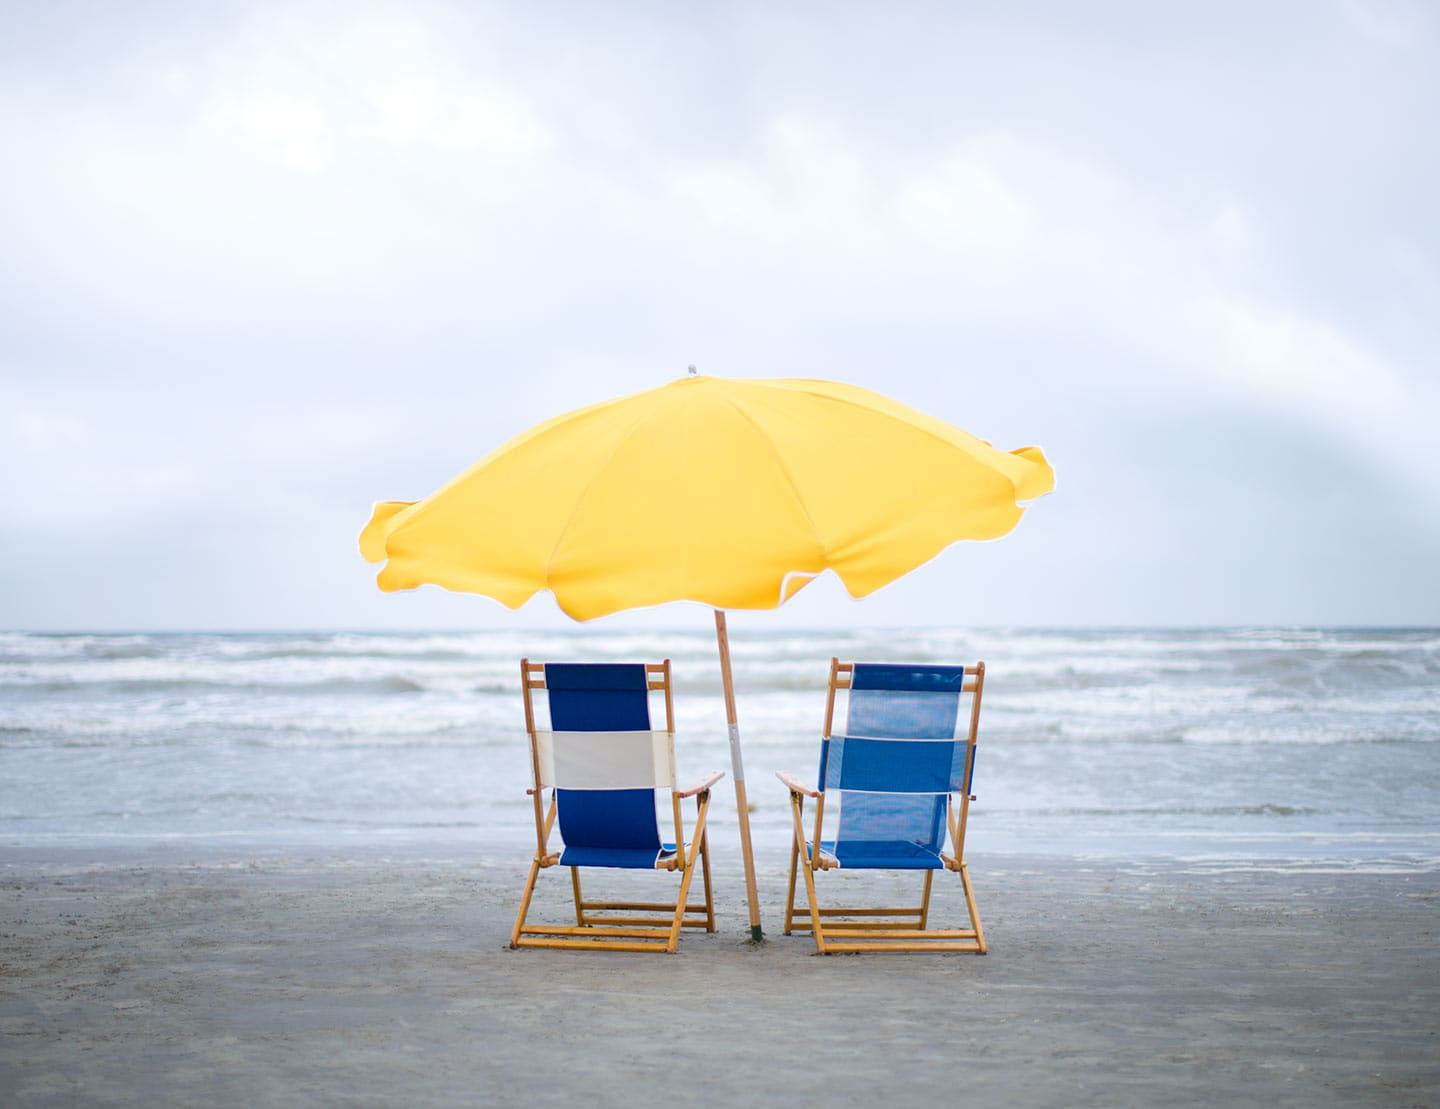 Two Blue Beach Chairs And A Yellow Sun Umbrella Facing Water Image  Perspective Behind